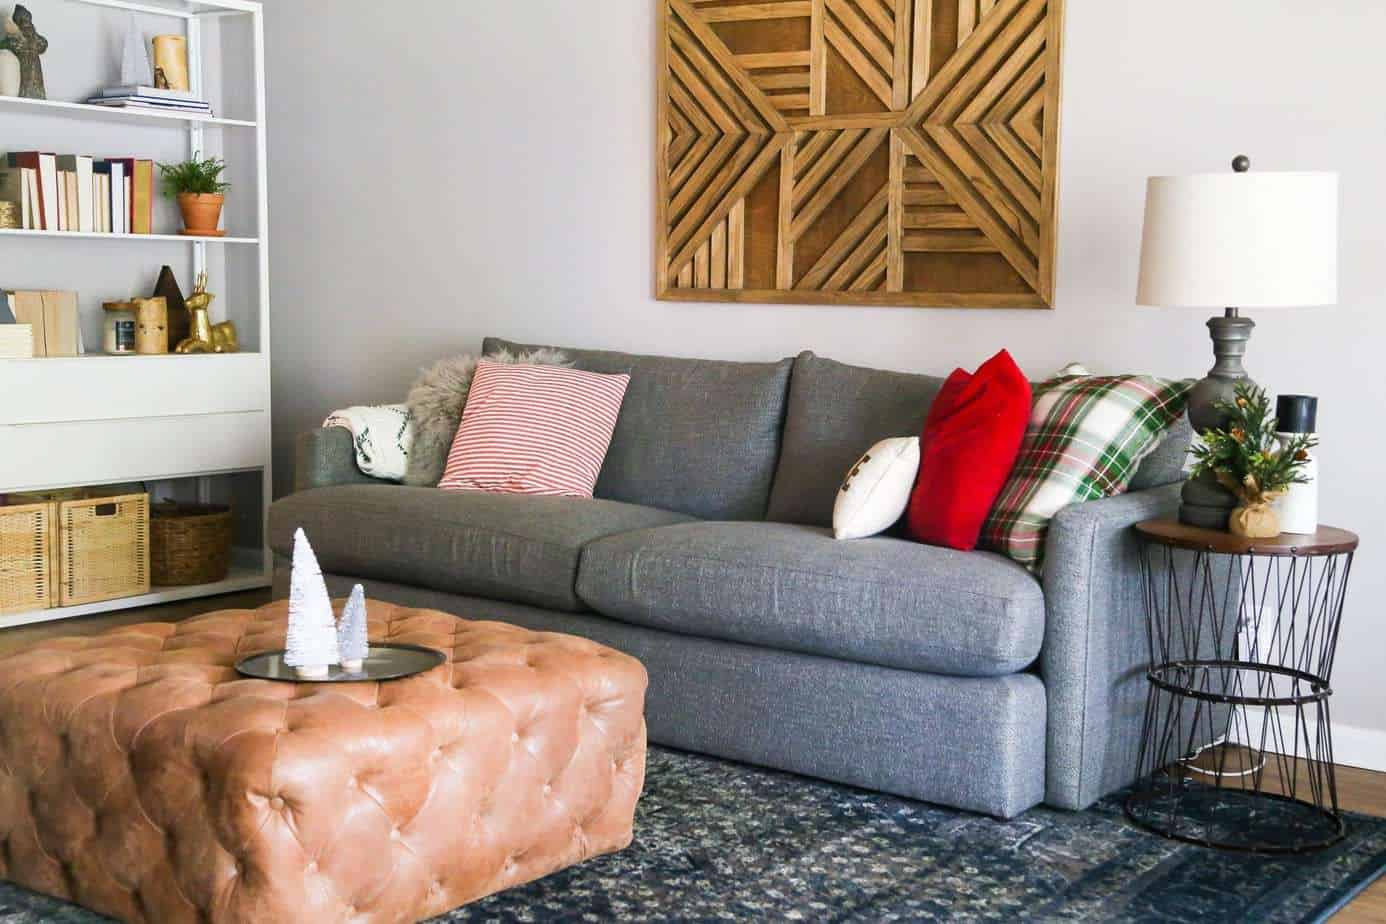 Scenic Barrel Couch Fabric Barrel Couch Cleaning Crate Crate Barrel Lounge Ii Our Big A Crate Barrel Lounge Ii Sofa Review Crate houzz-03 Crate And Barrel Couch